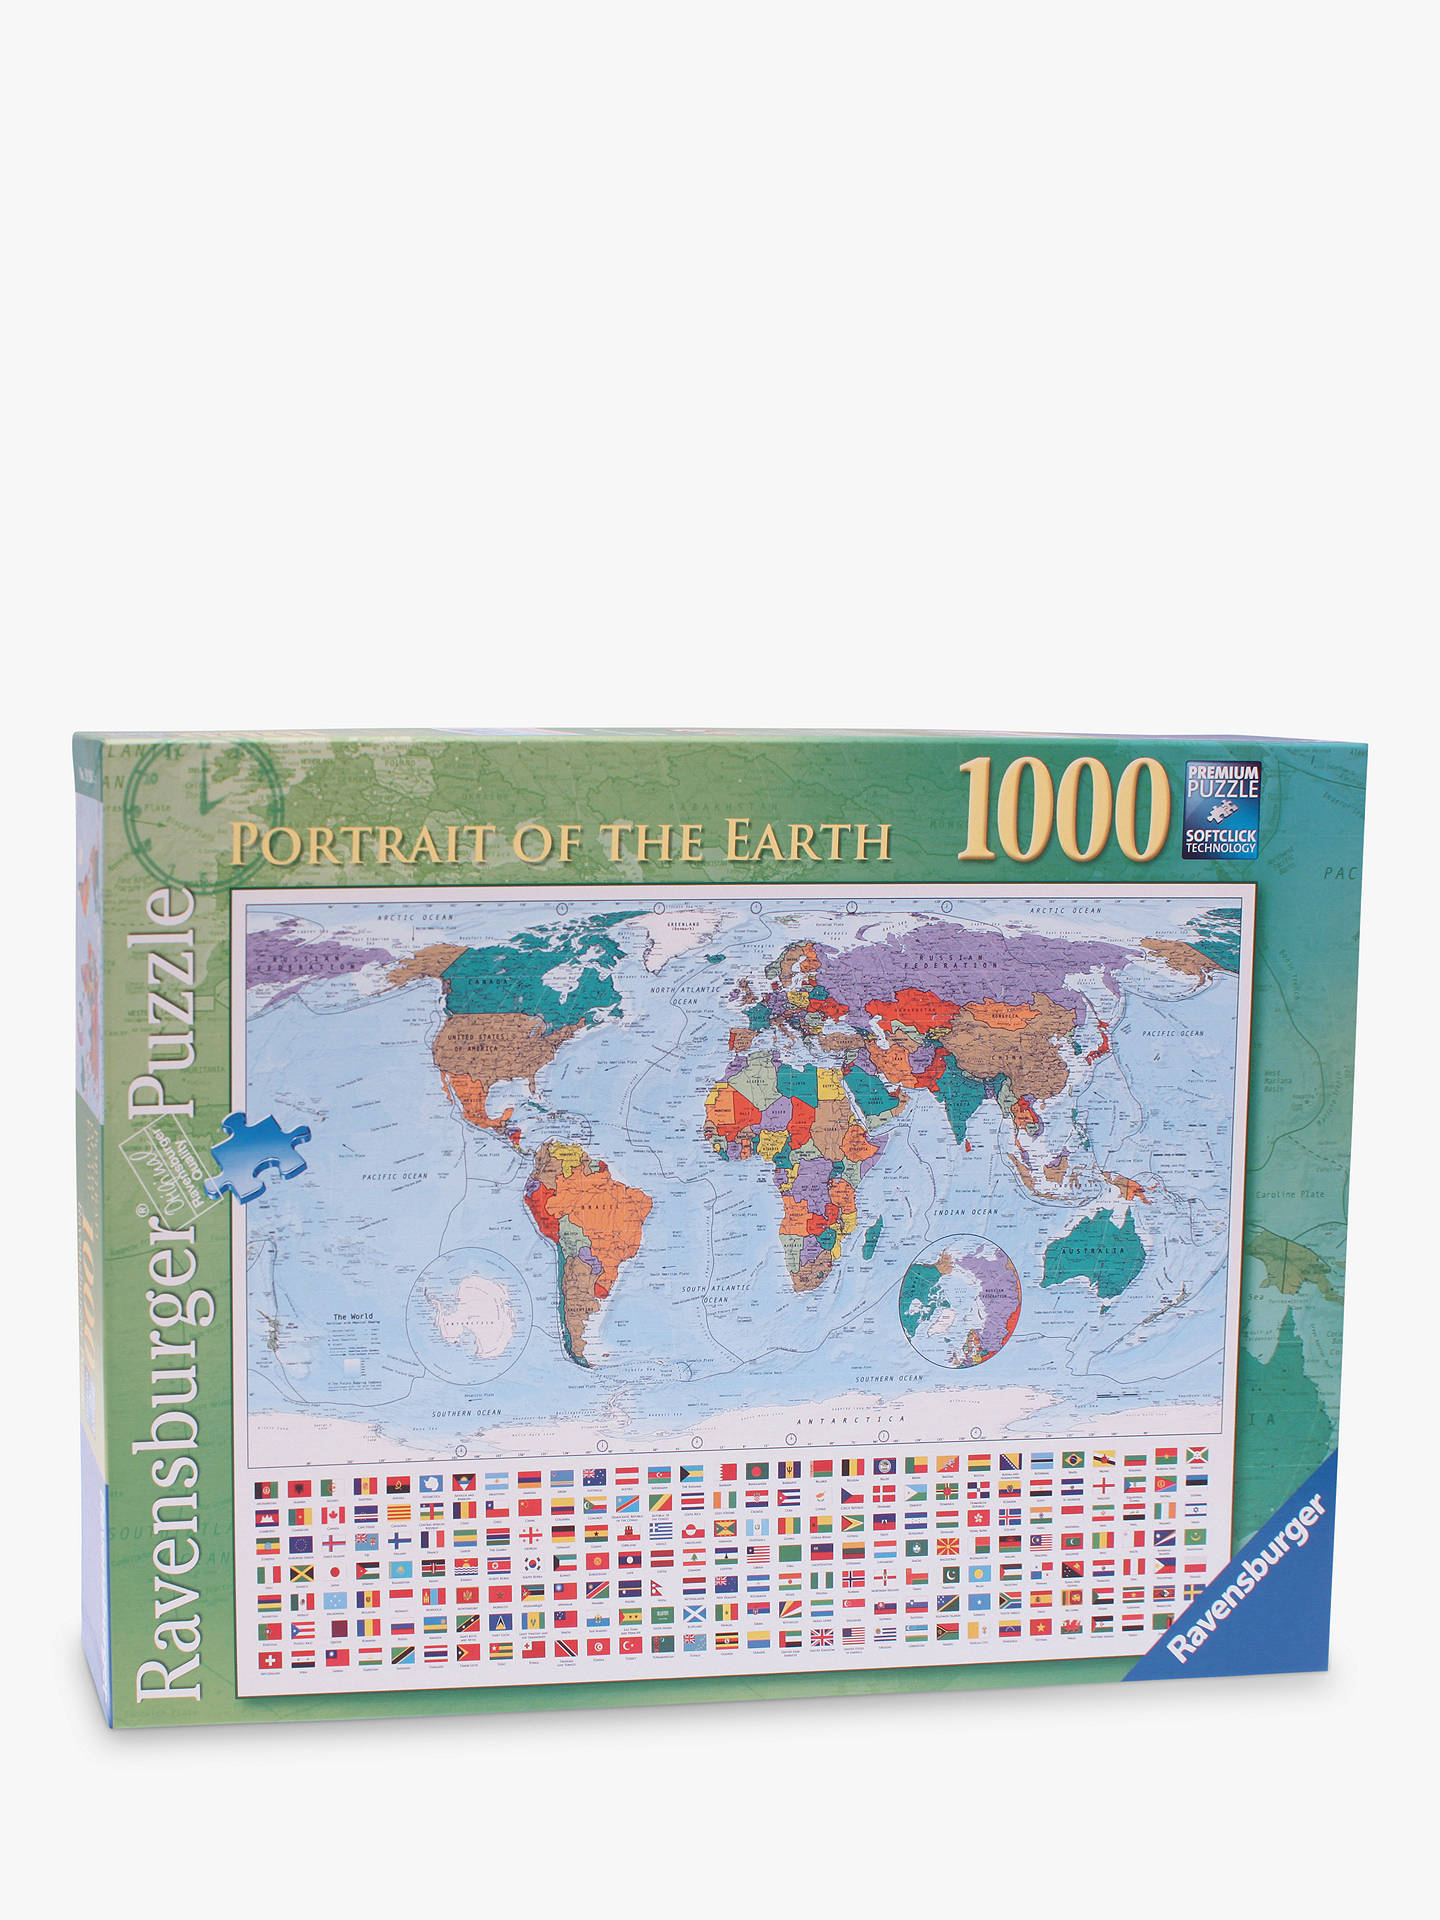 BuyRavensburger Portrait of the Earth Jigsaw Puzzle, 1000 Pieces Online at johnlewis.com